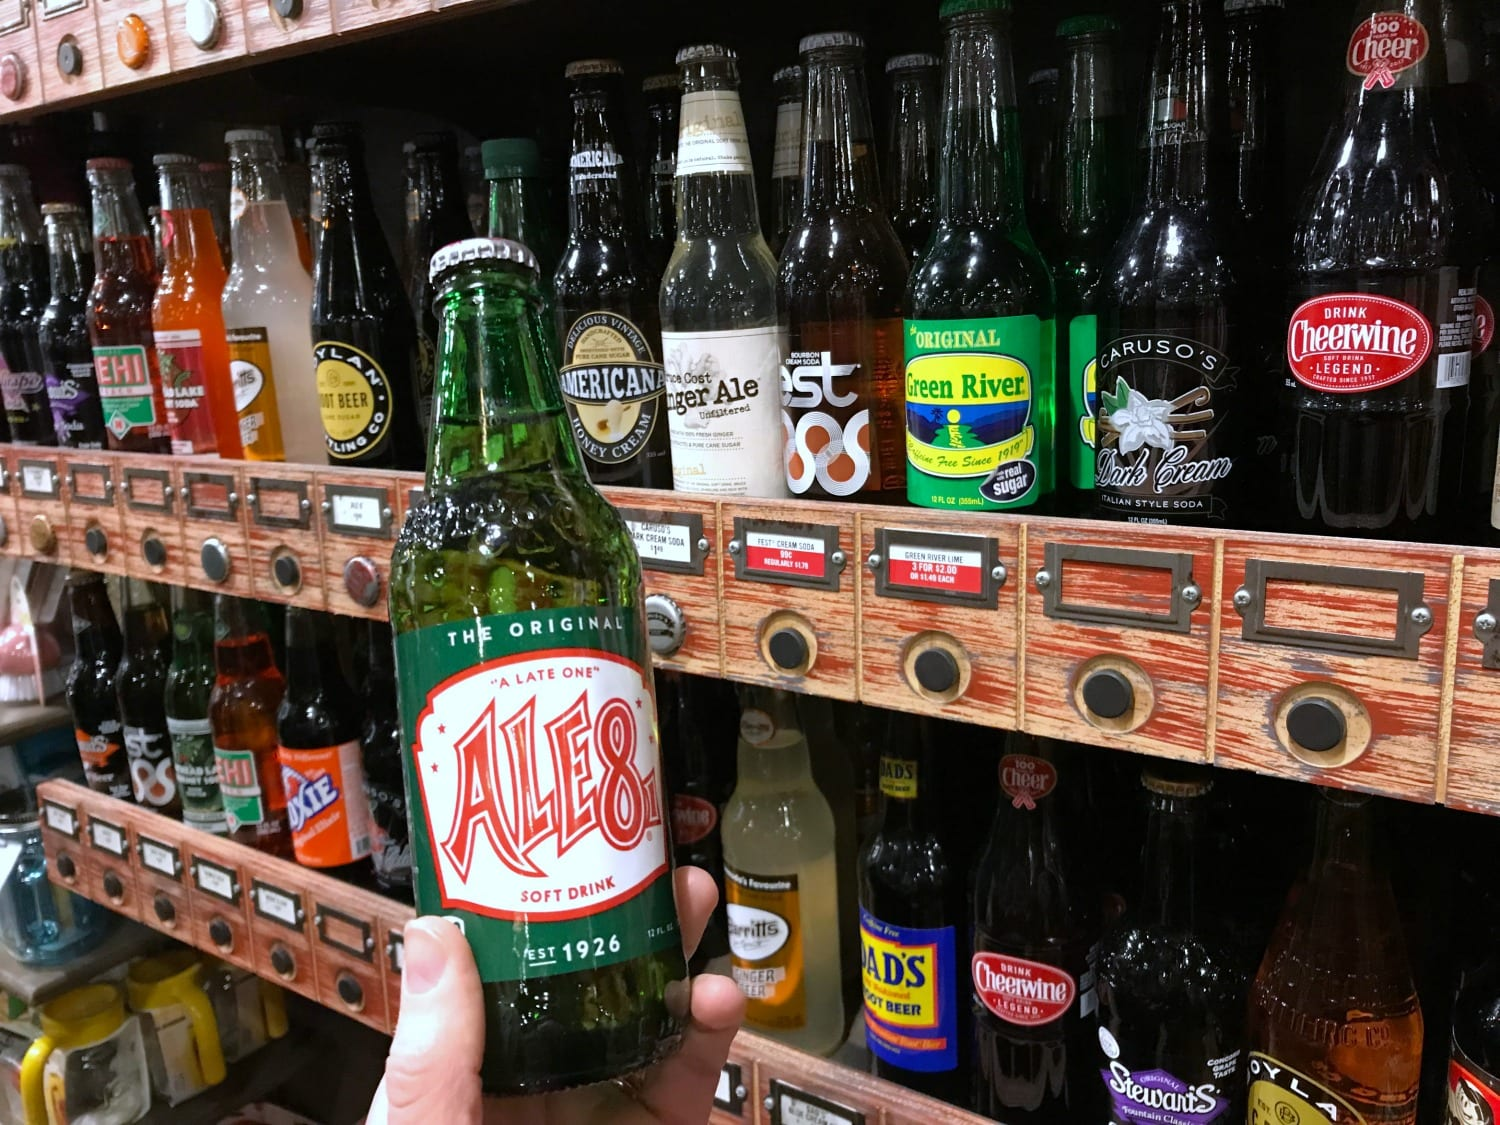 You can buy Ale-8-1 at Cracker Barrel stores!